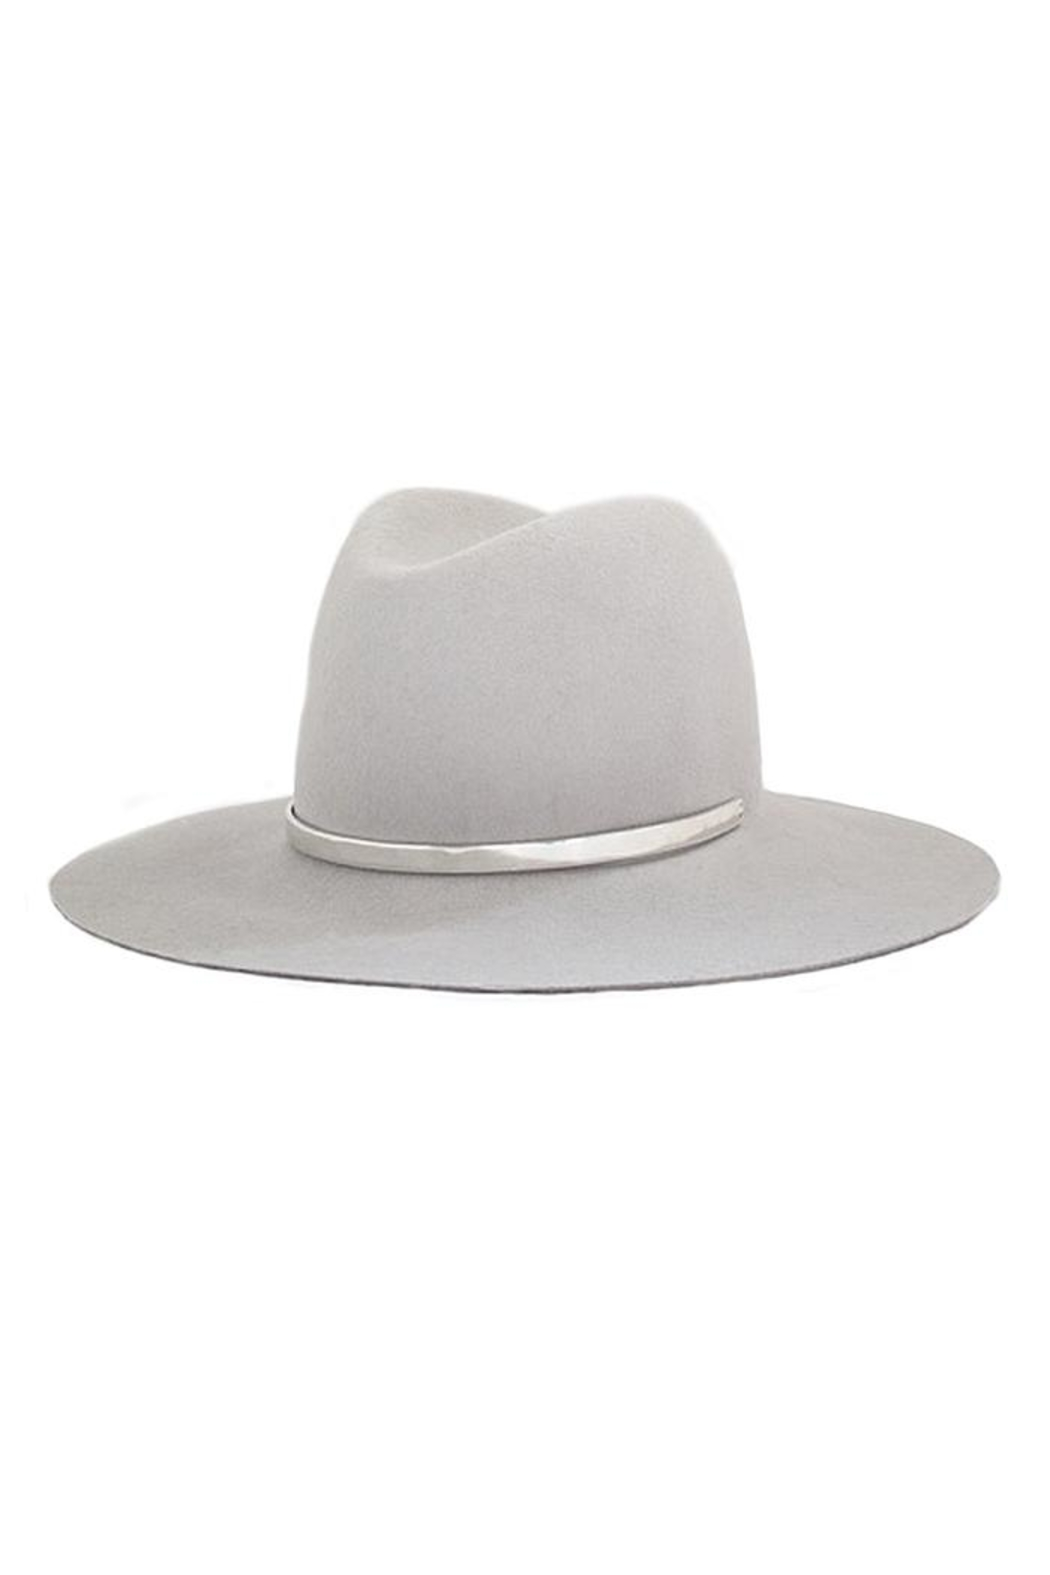 Janessa Leone Sylvar Silver Hat - Front Cropped Image